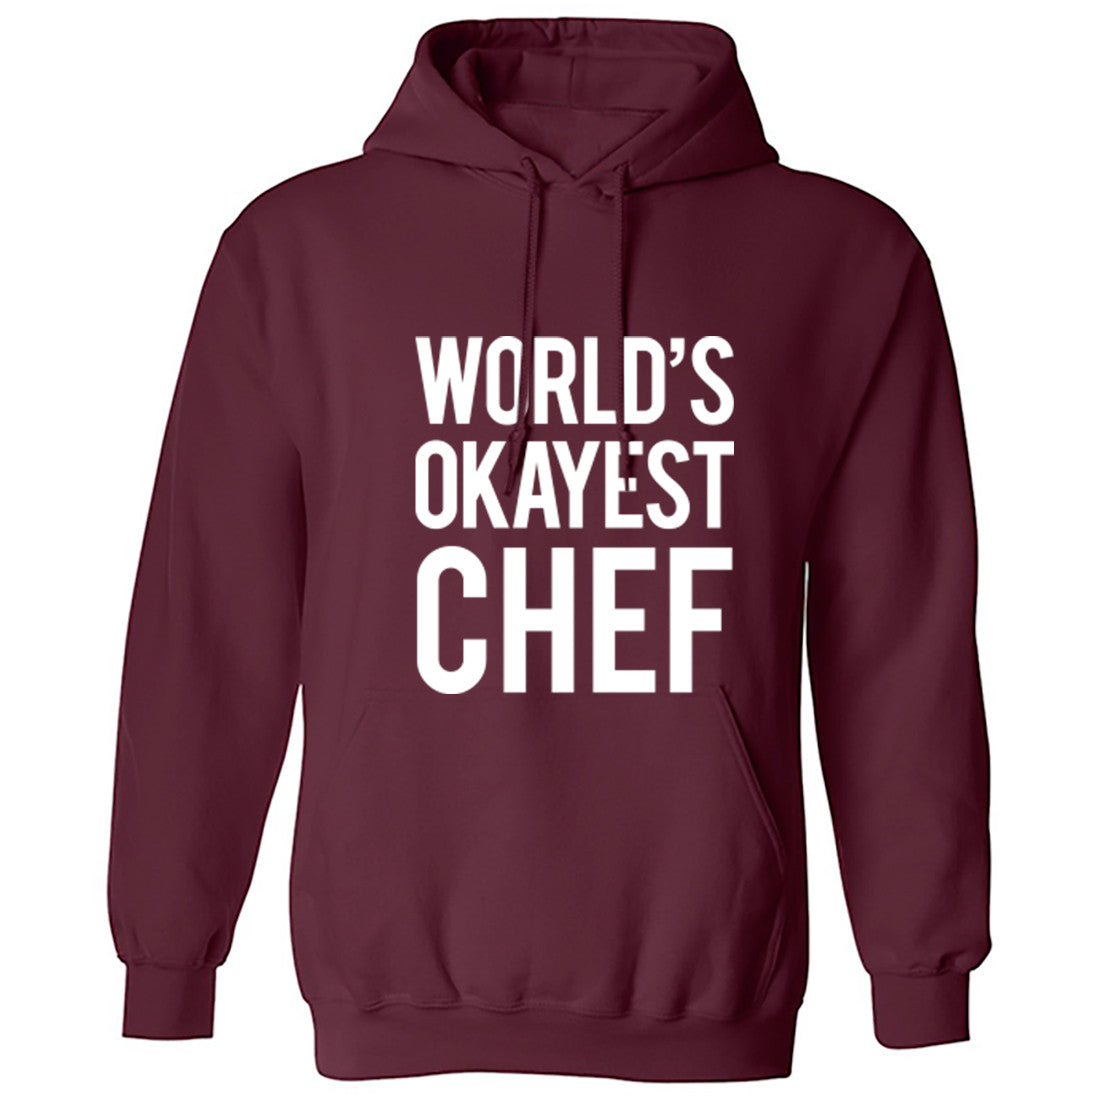 Worlds Okayest Chef Unisex Hoodie K0514 - Illustrated Identity Ltd.